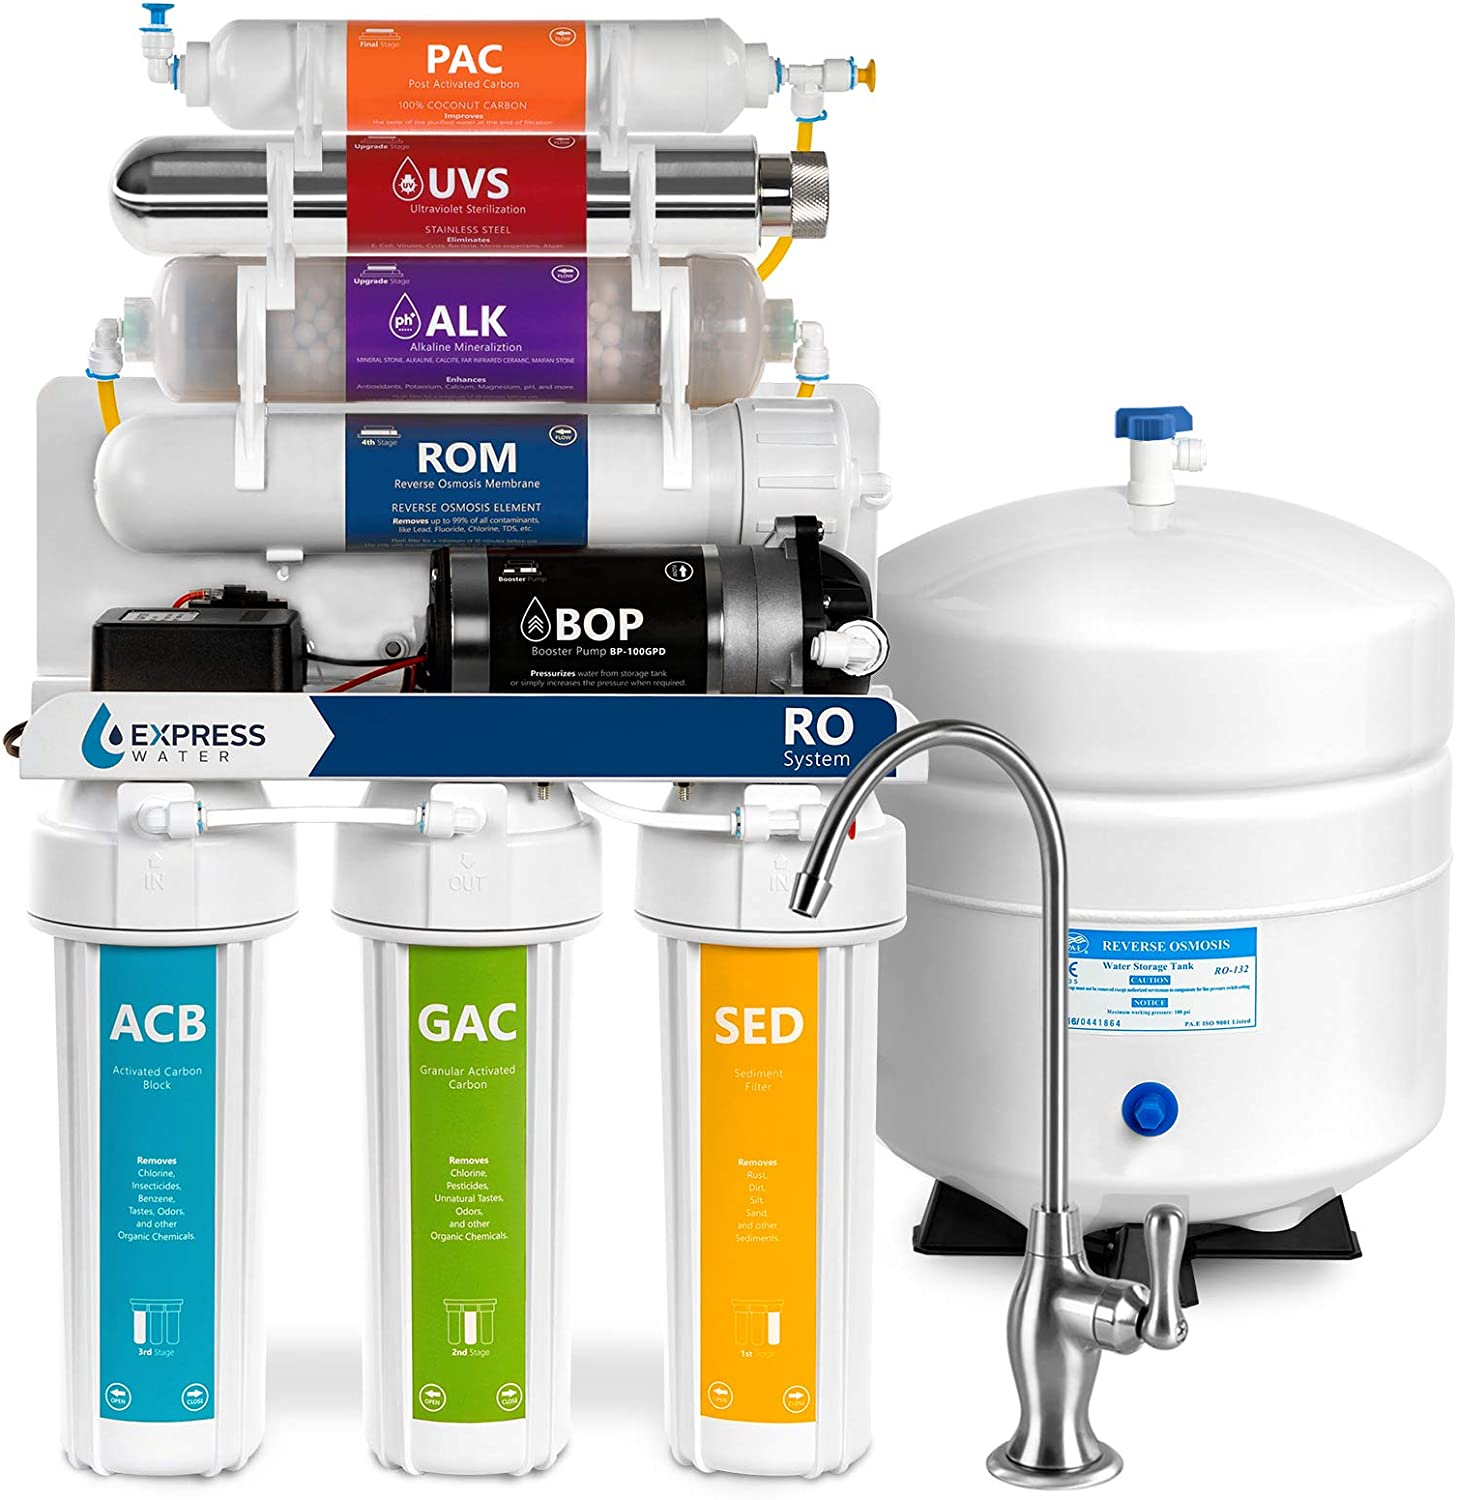 Carbon GAC 23 Filters with 50 GPD RO Membrane 10 inch Size Water Filters Express Water Incorporated FLTSETS6C6G6I3M502 PAC Filters ACB Express Water Sediment SED Filters 3 Year Reverse Osmosis System Replacement Filter Set